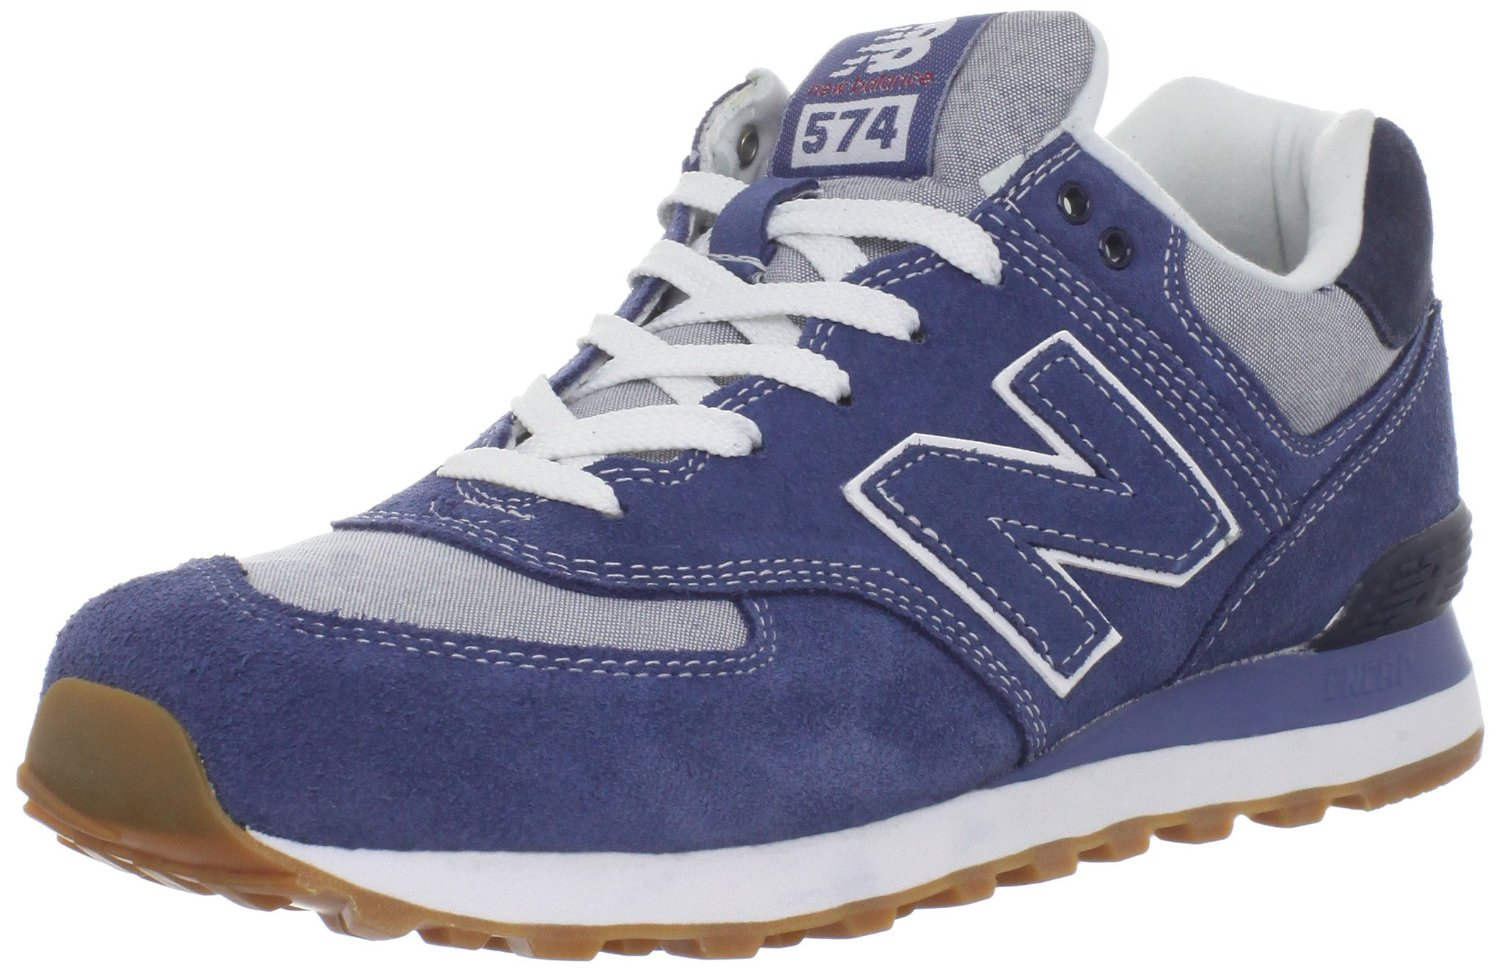 new balance new balance mens ml574 work wear laceup fashion sneaker in blue for men light blue. Black Bedroom Furniture Sets. Home Design Ideas